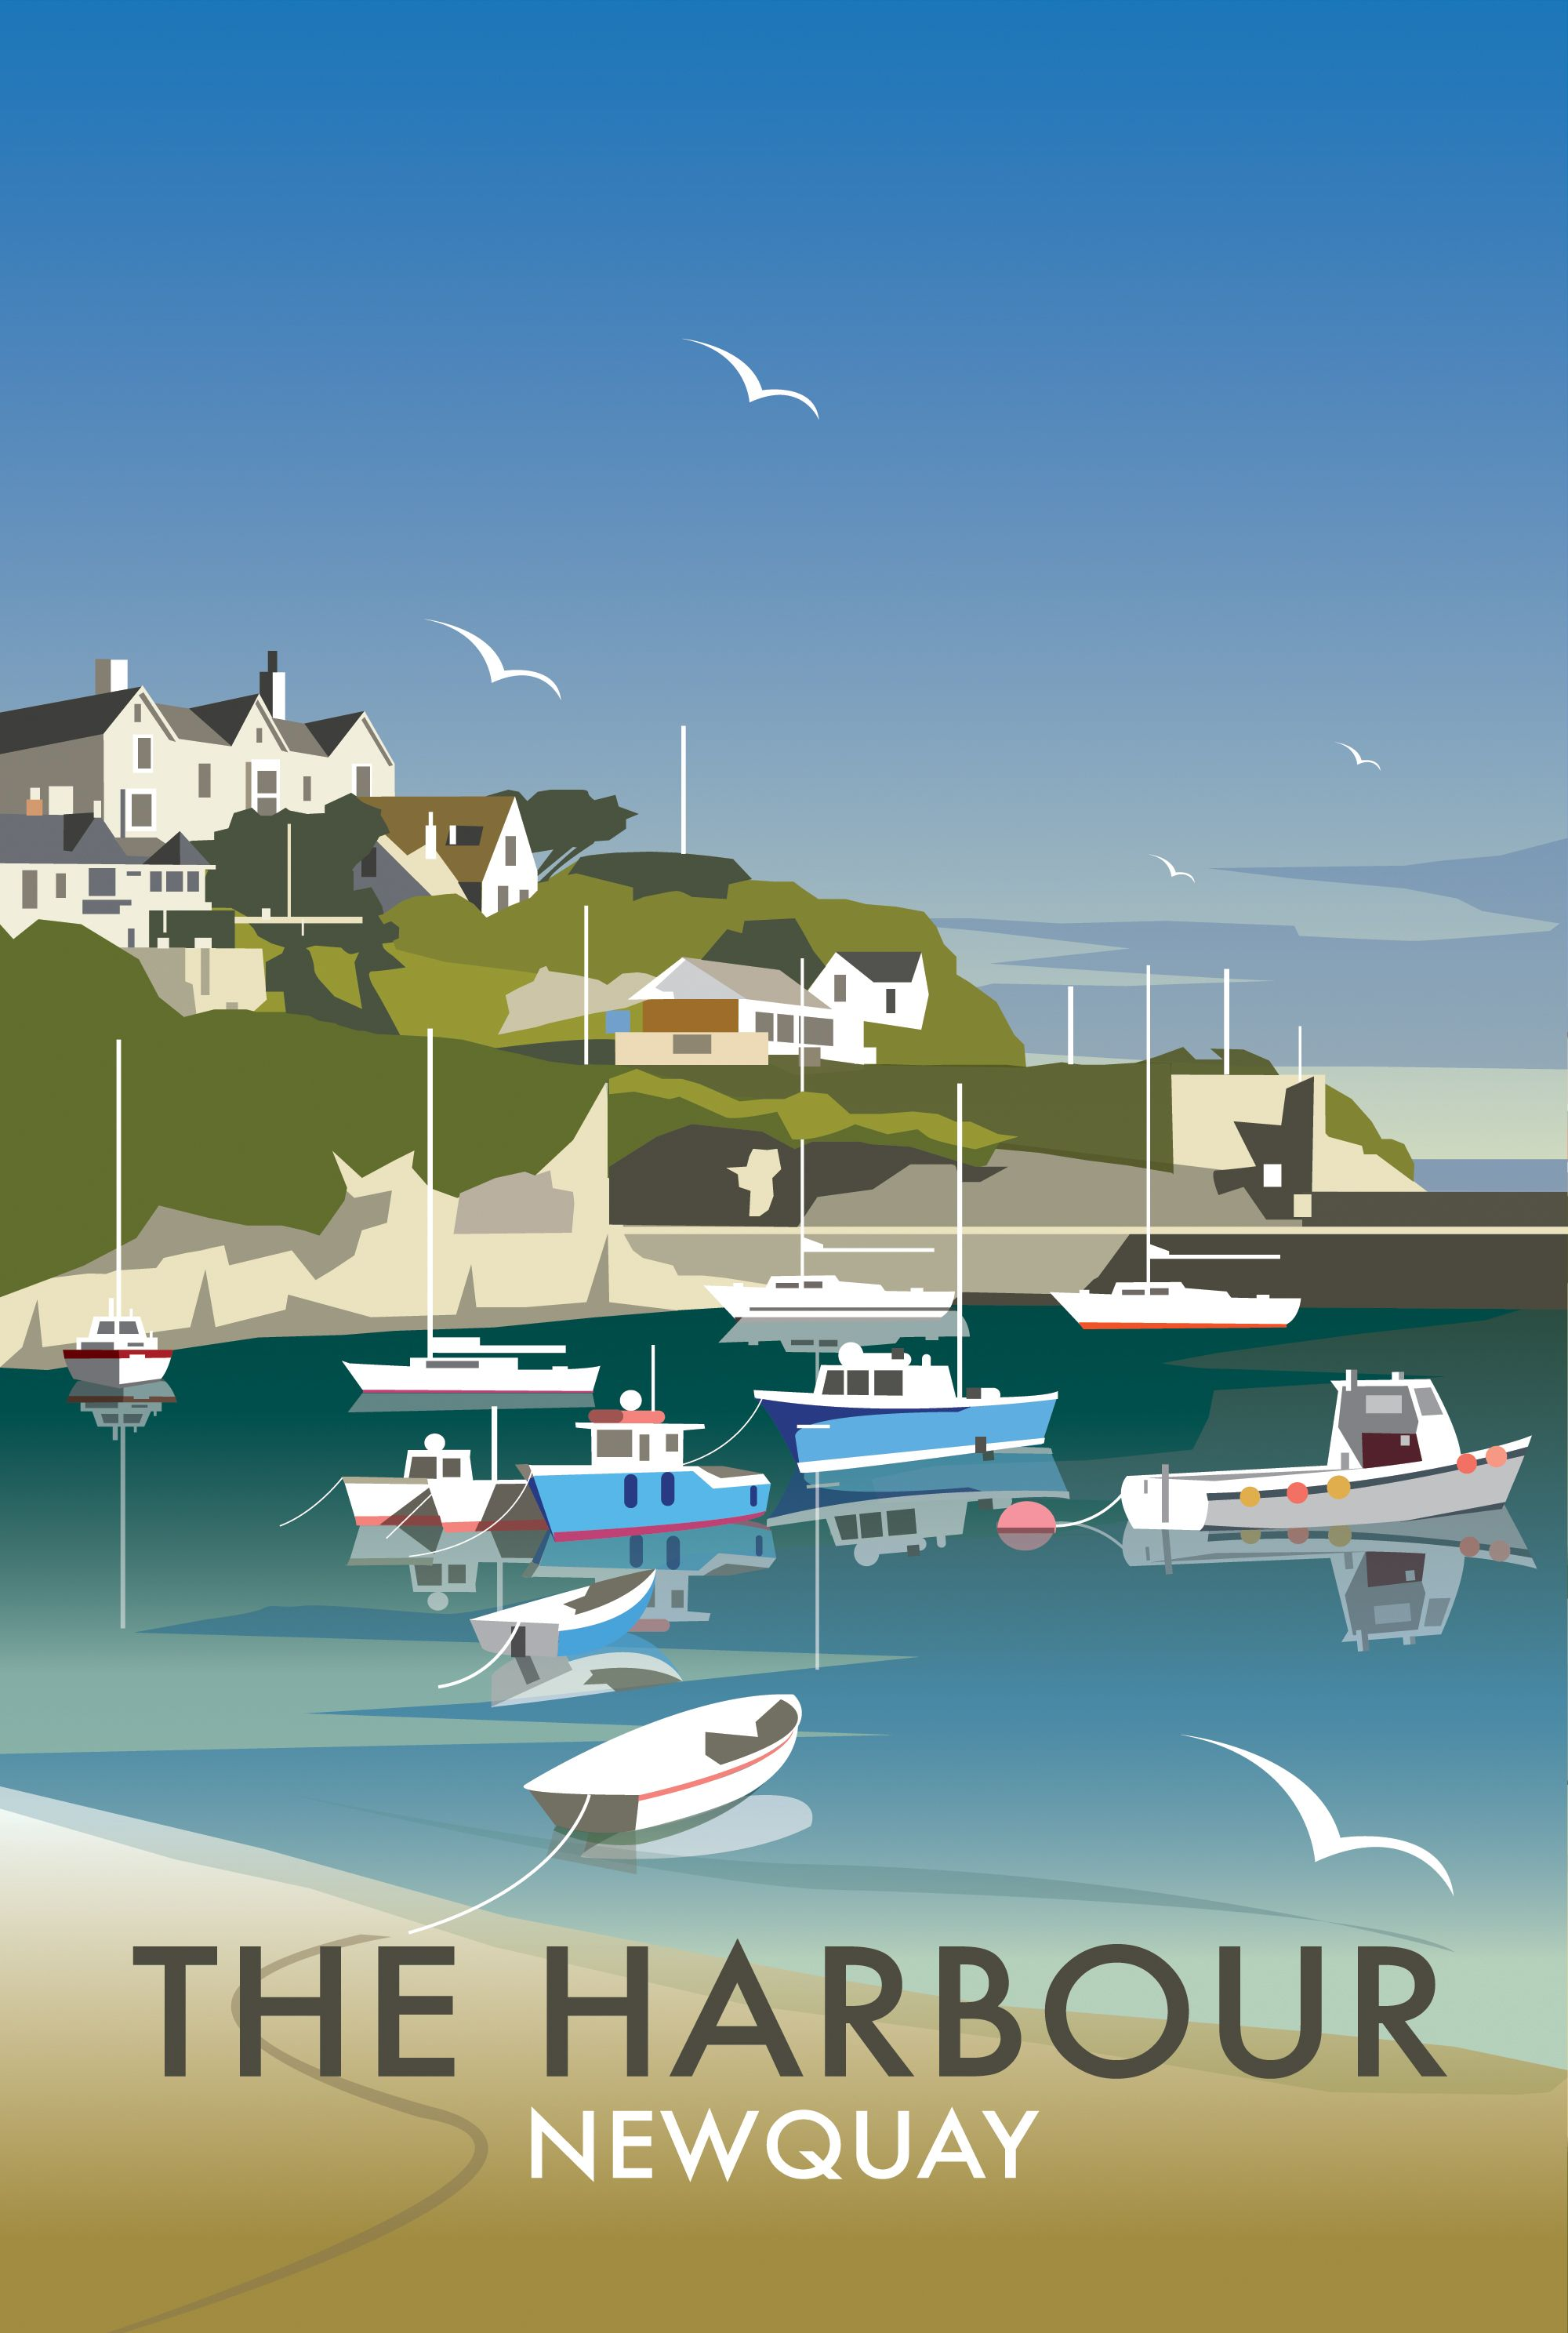 The Harbour (DT40) Beach and Coastal Print by Dave Thompson http ...